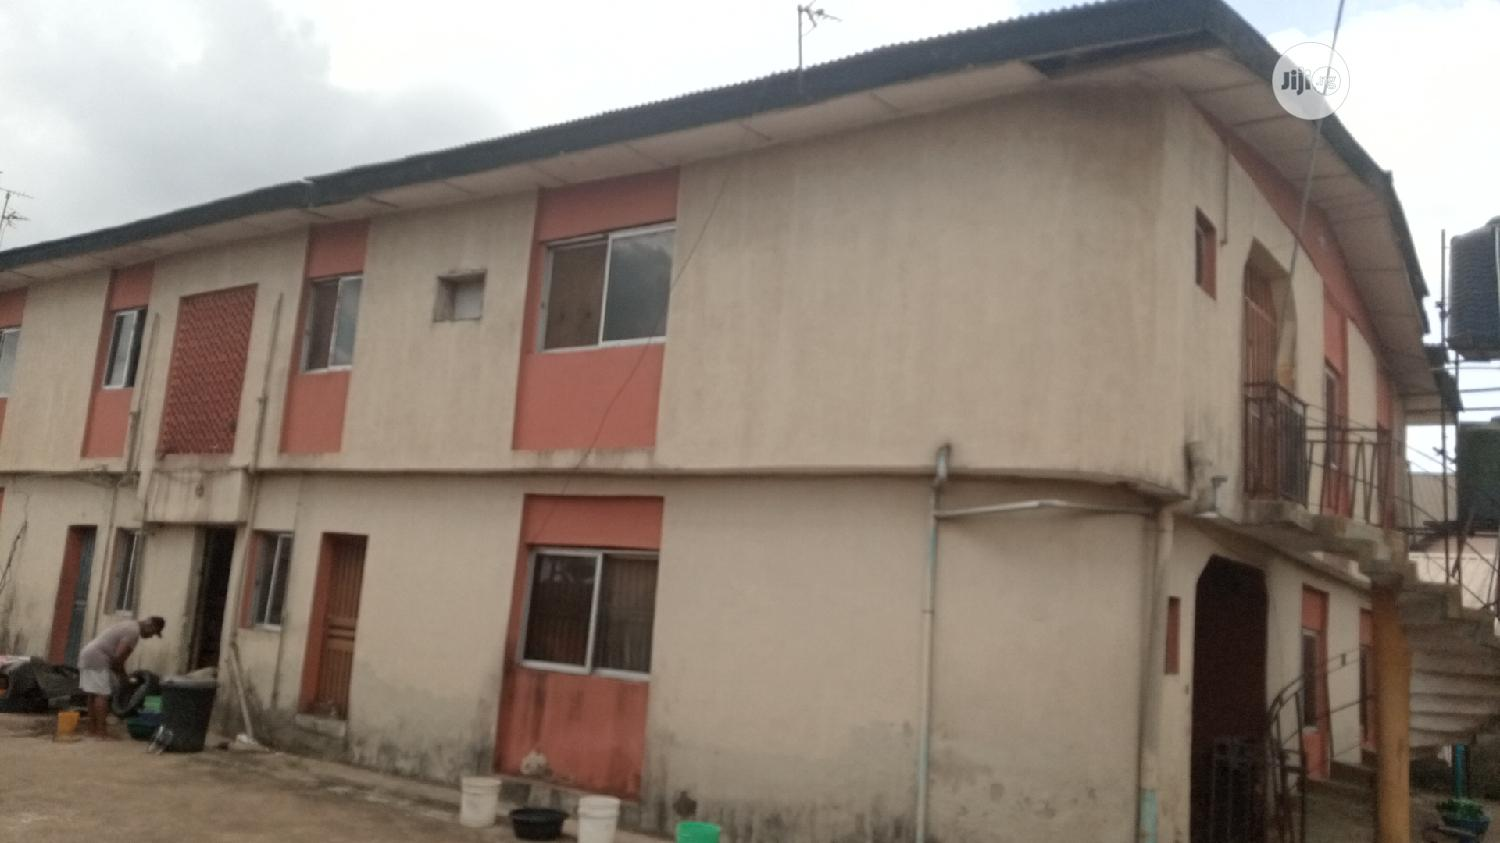 Standard Clean Four Units Of Three Bedroom Flats For Sale   Houses & Apartments For Sale for sale in Alimosho, Lagos State, Nigeria